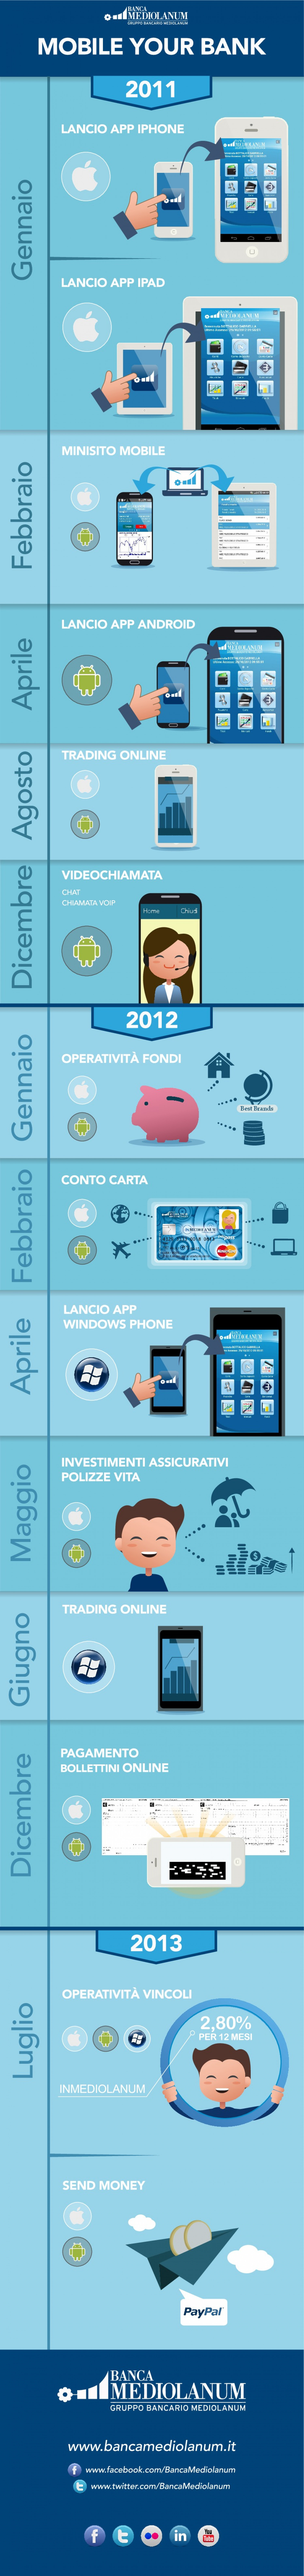 Mobile your bank Infographic